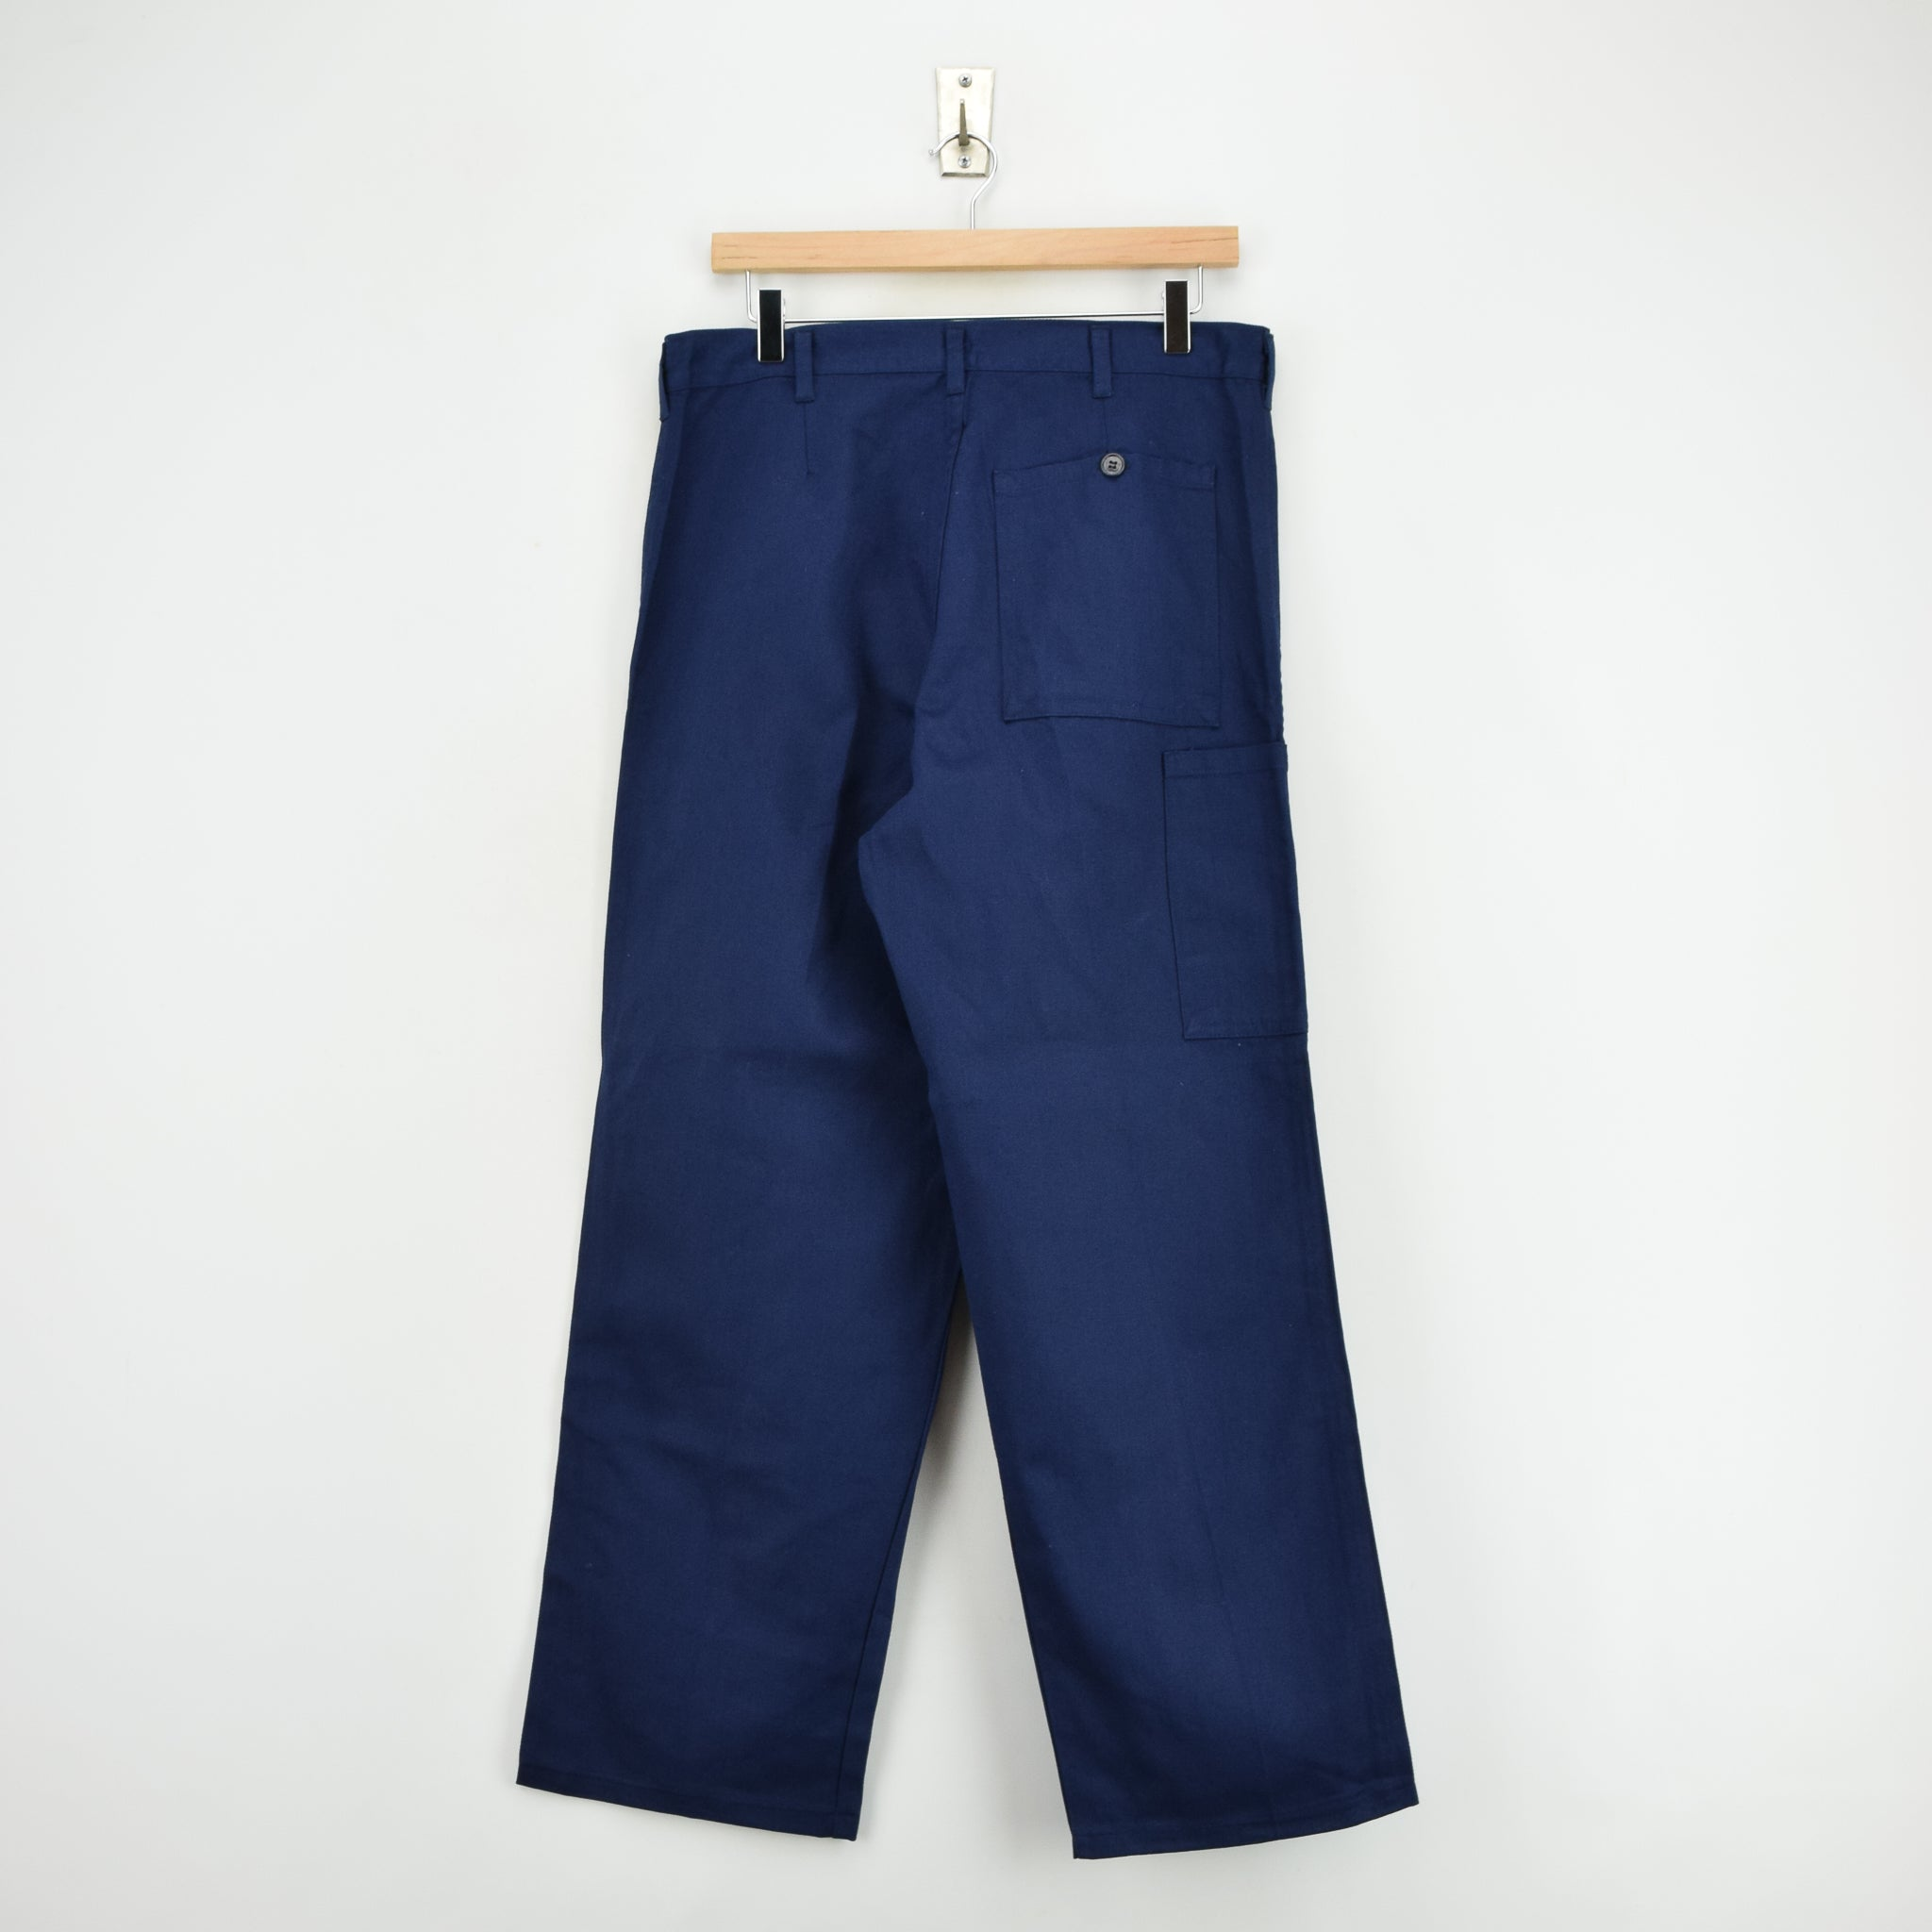 Vintage Deadstock Blue French Style Work Utility Trousers Italy Made 30 W 28 L back